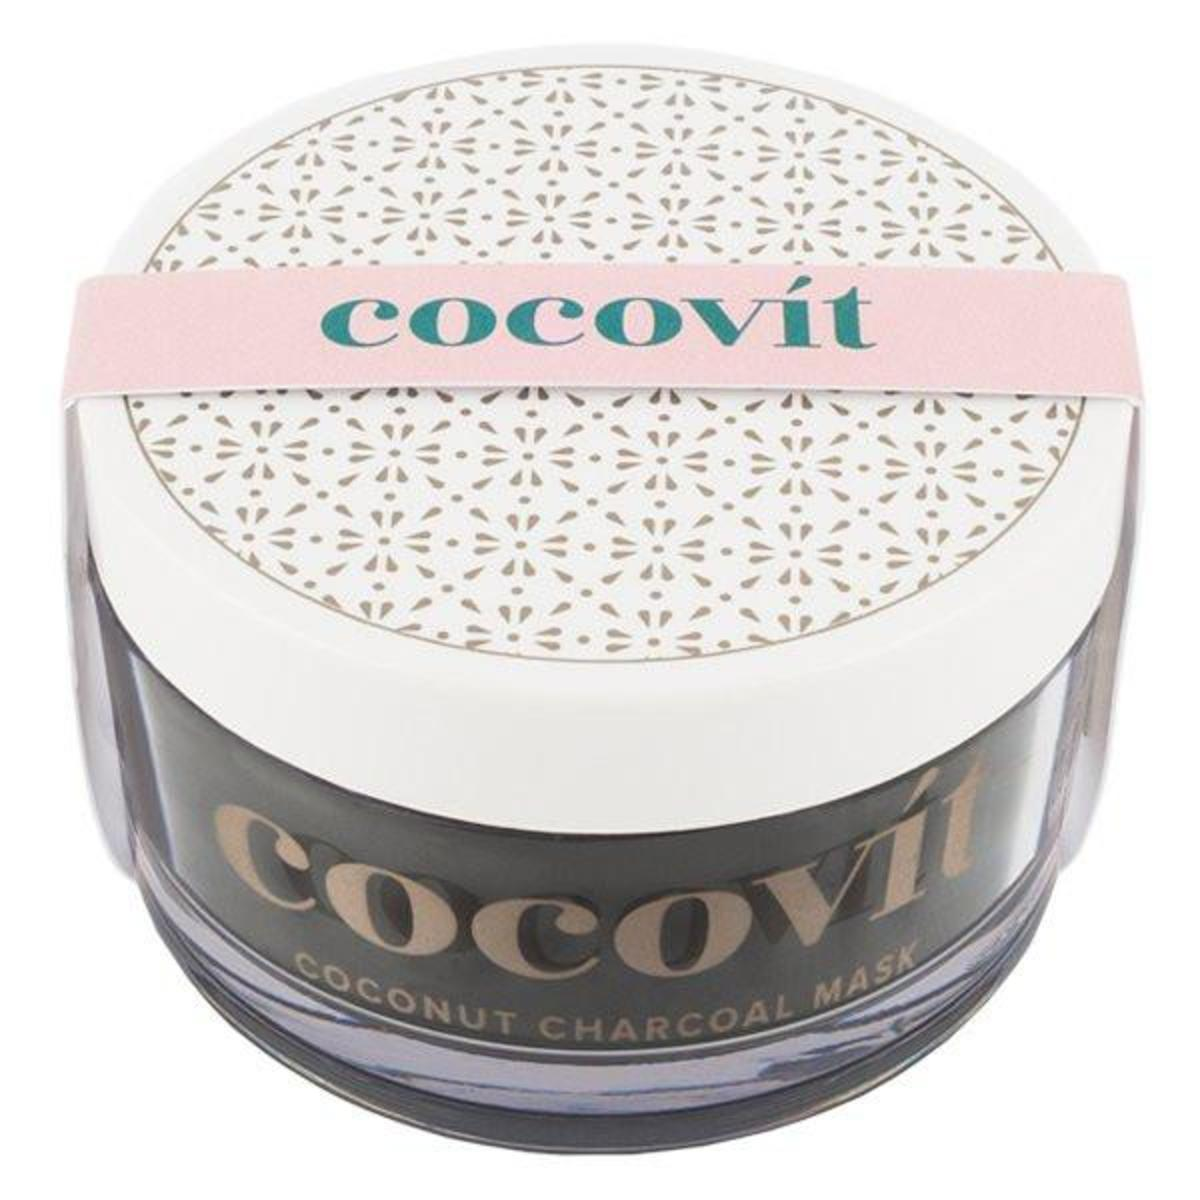 Cocovit Charcoal Face Mask